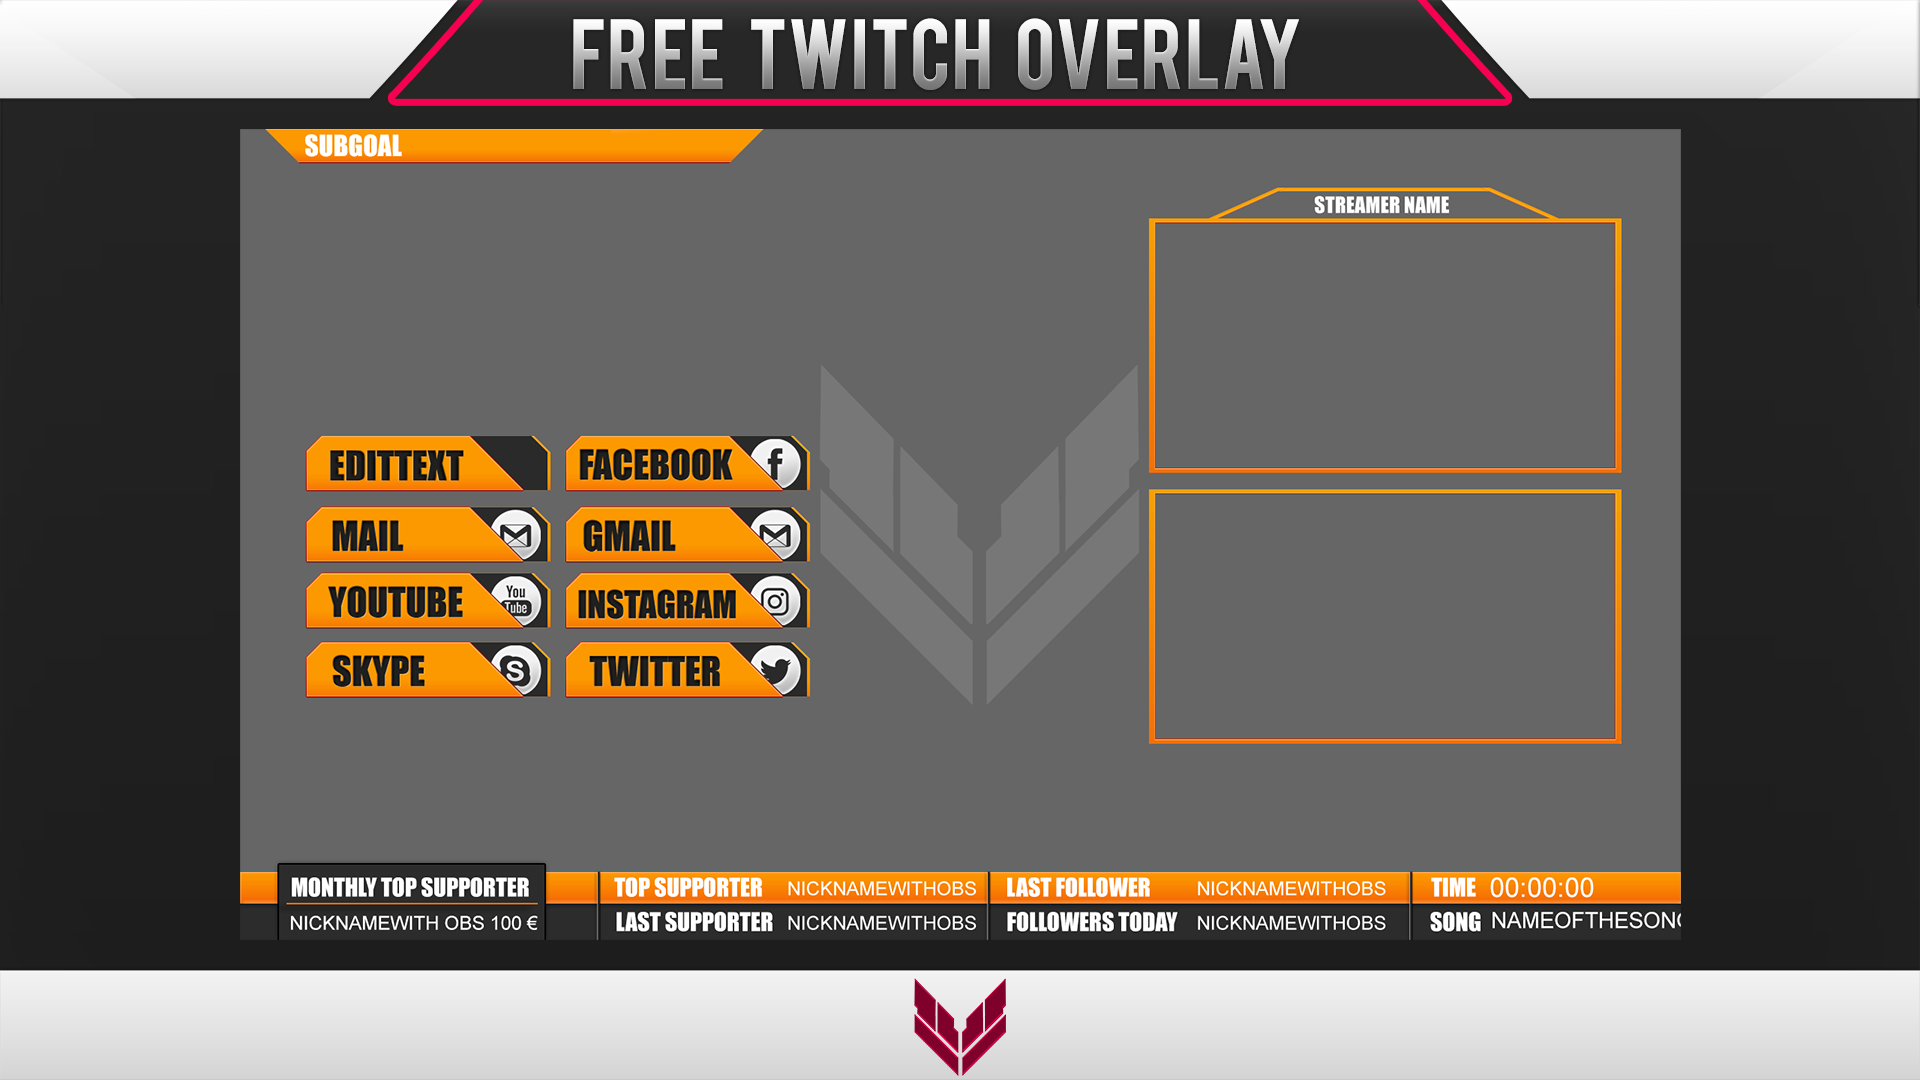 Template [Free Twitch Overlay] #4 by Ayzs on DeviantArt